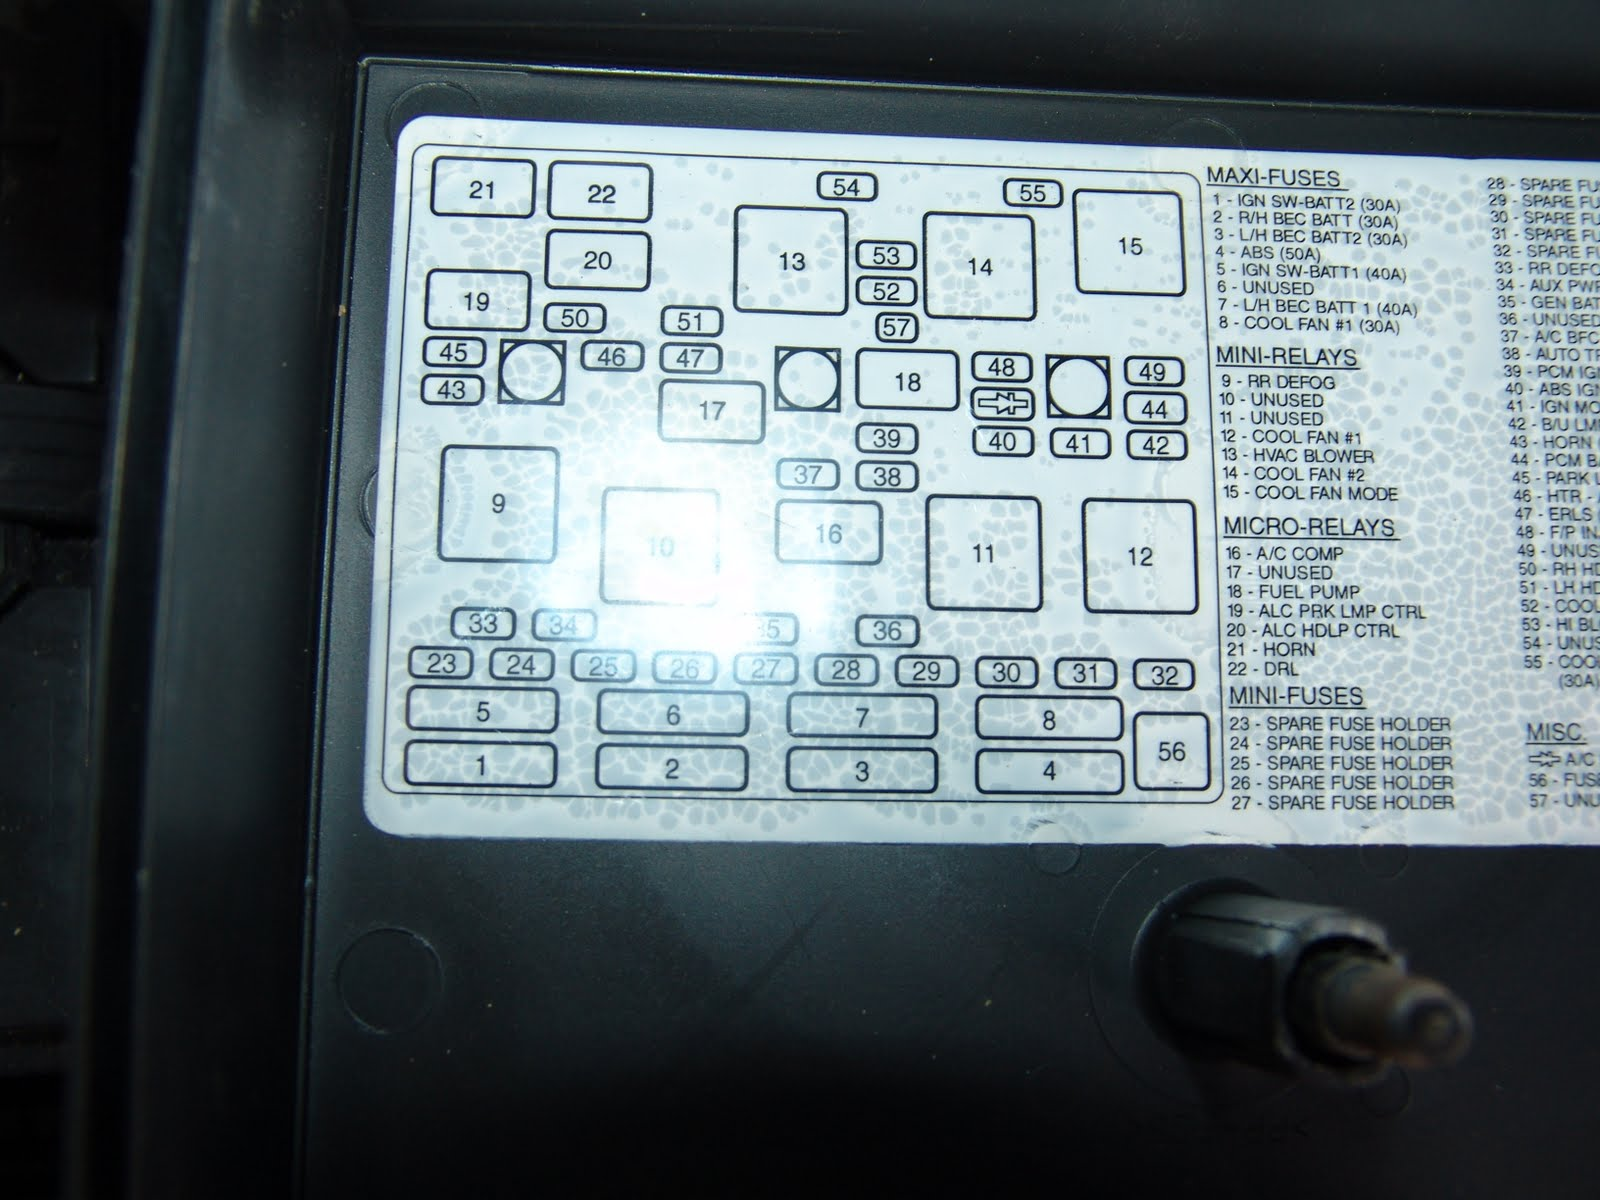 2013 Malibu Fuse Box Diagram 28 Wiring Images 2010 Chevy 2002 Iknquoe Instrument Panel Image